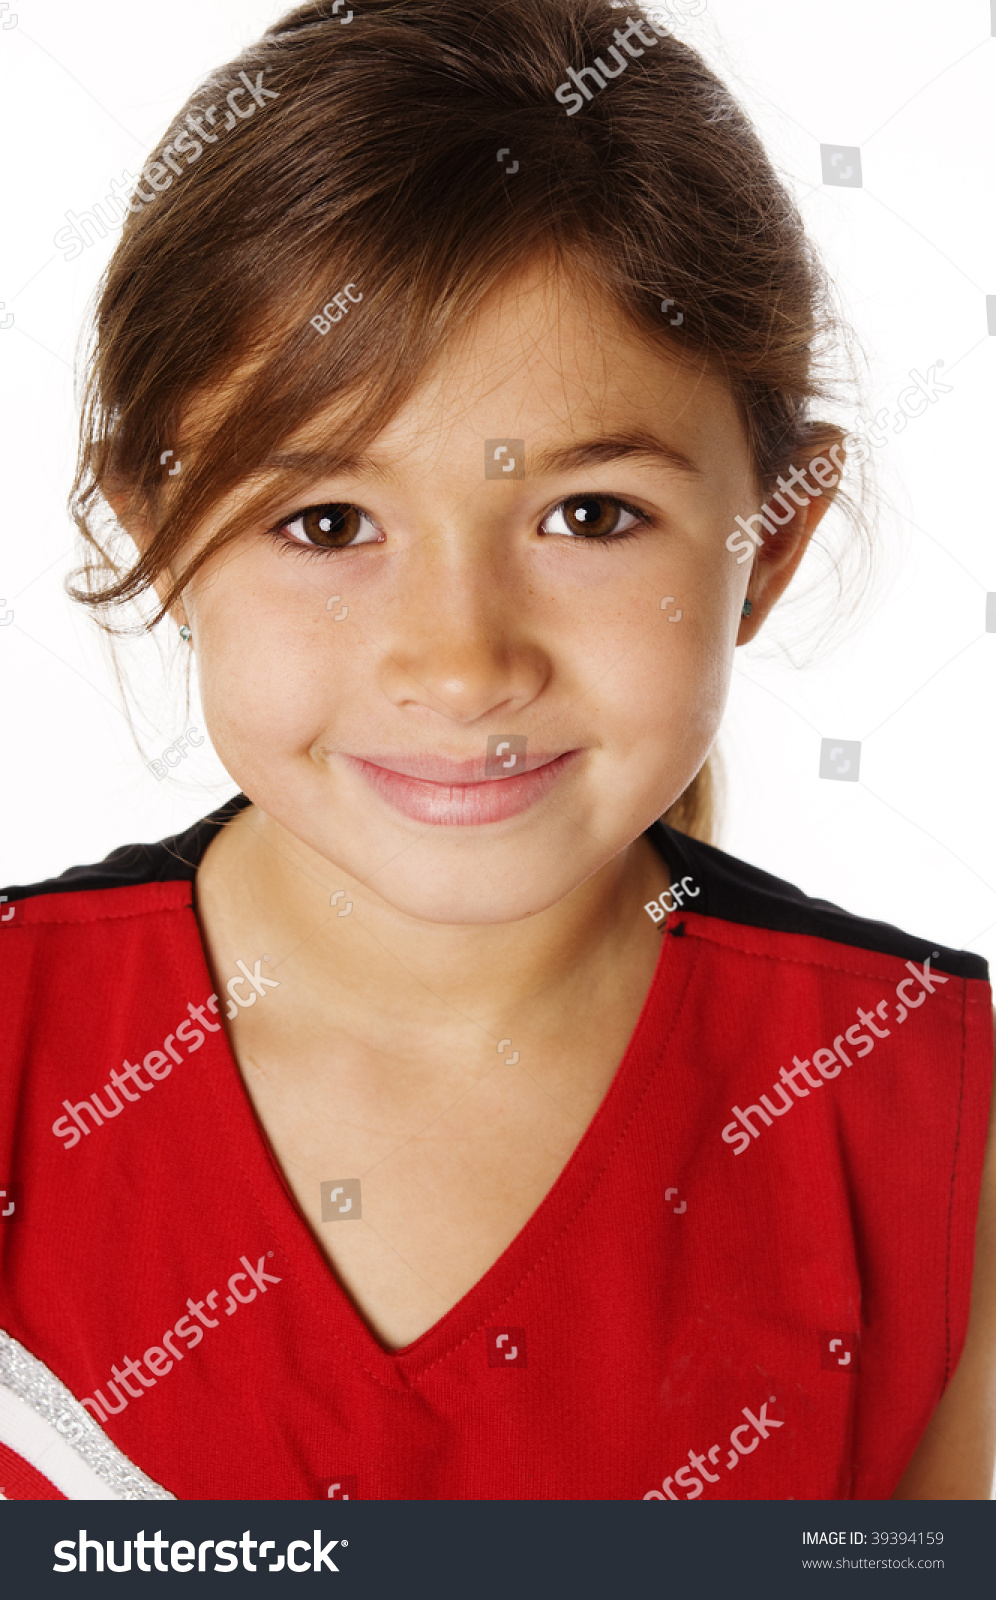 Grimace face clip art stock photo woman pulls a face in upset - Cute Mixed Race Girl